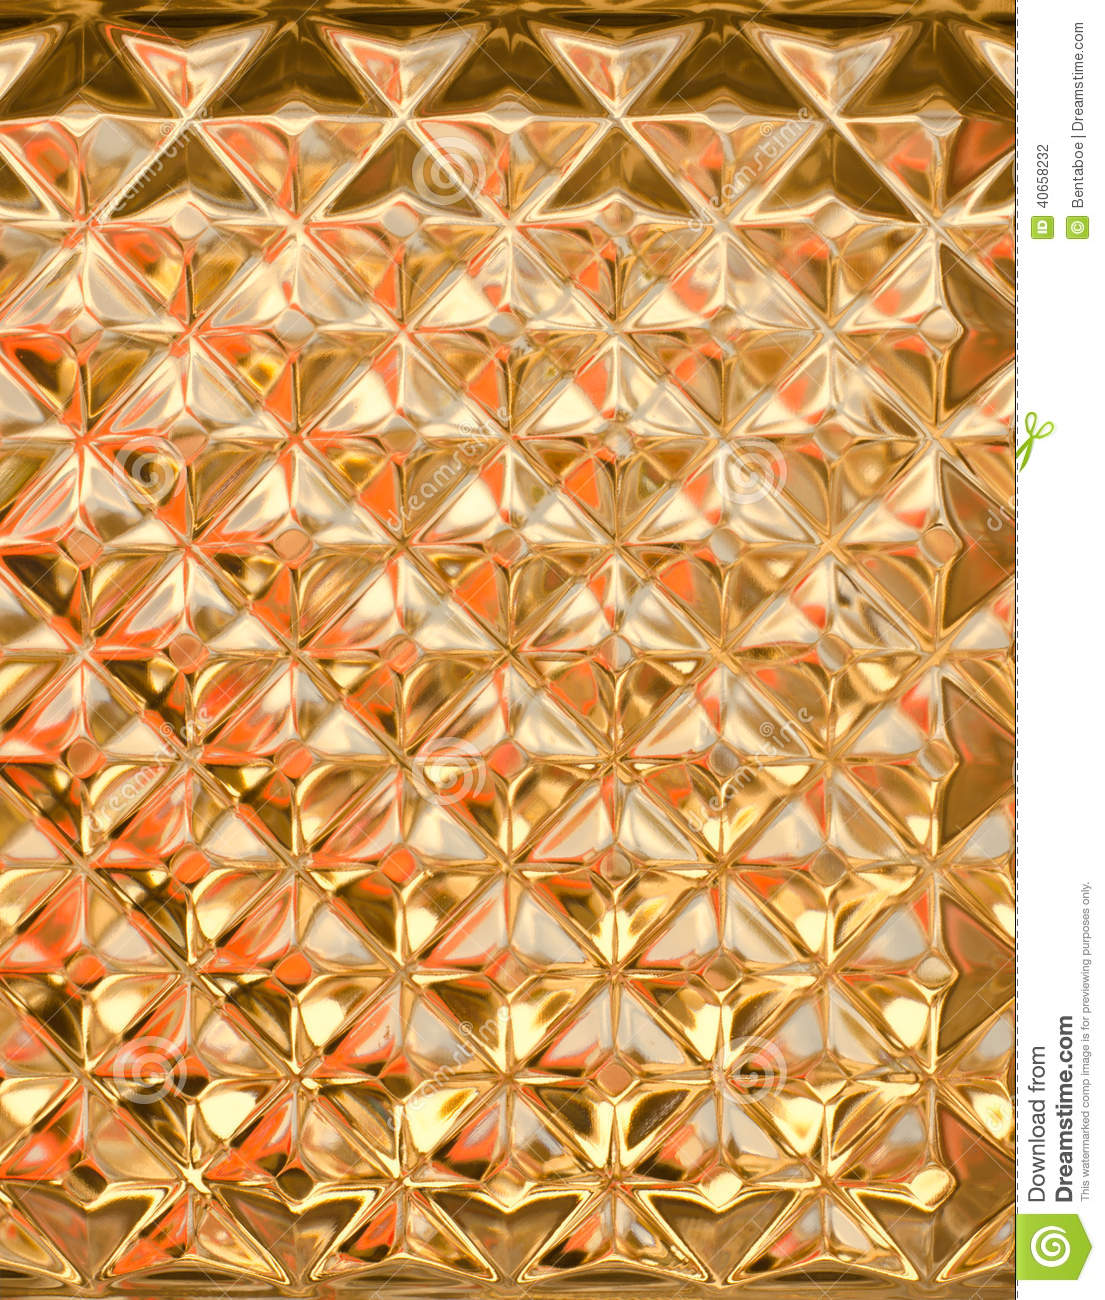 Golden transparent glass wall texture stock photo image for Exterior glass wall texture